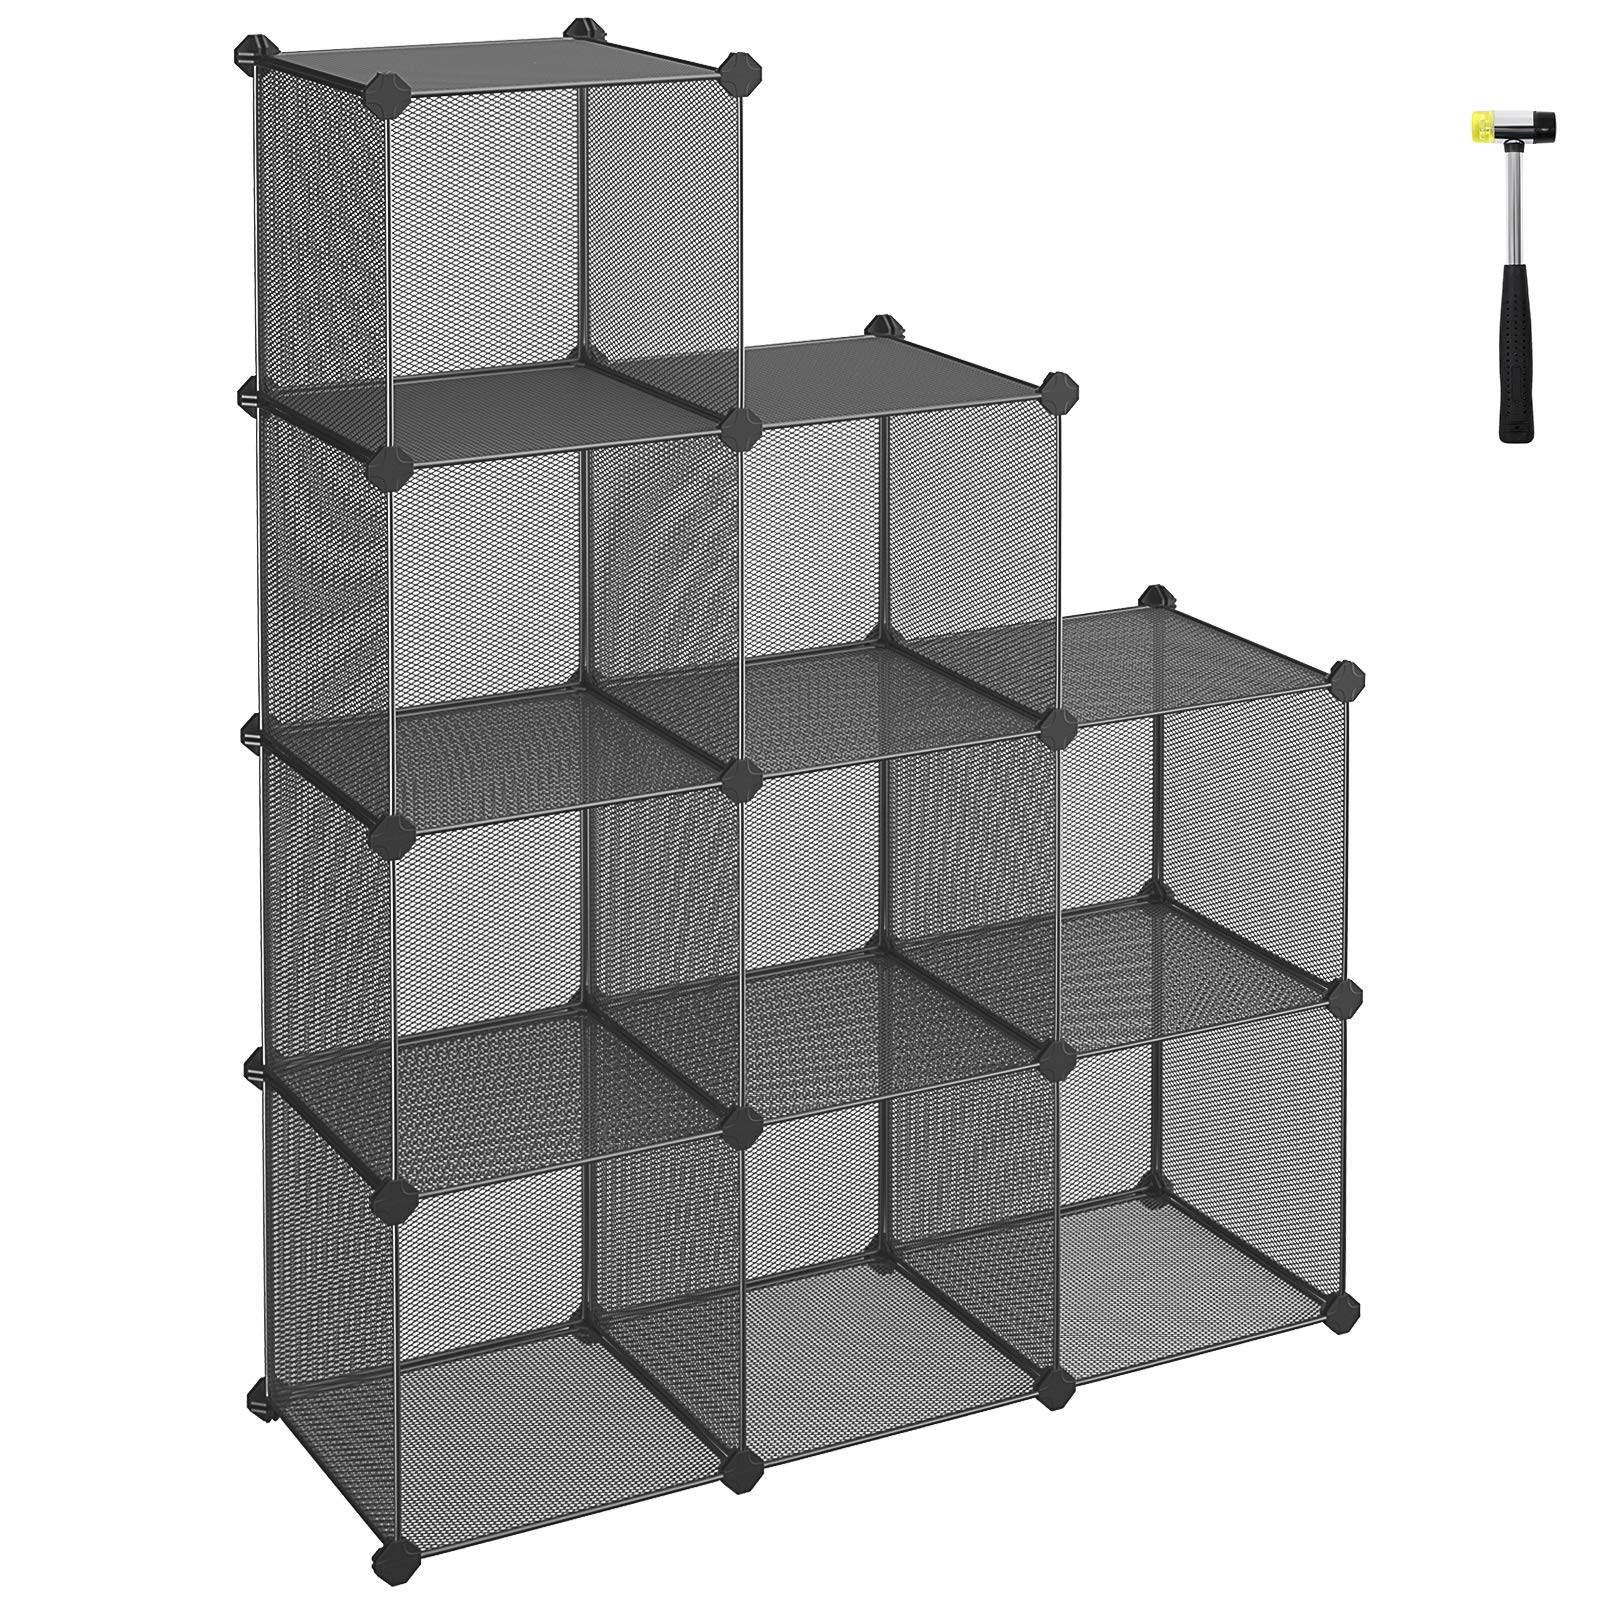 SONGMICS 9-Cube Metal Mesh Storage Cube, Book Shelf, Modular Bookcase, DIY Closet Cabinet Organizer for Books, Plants, Toys, Shoes, Clothes 36.6''L x 12.2''W x 48.4''H, Gray ULPL115G